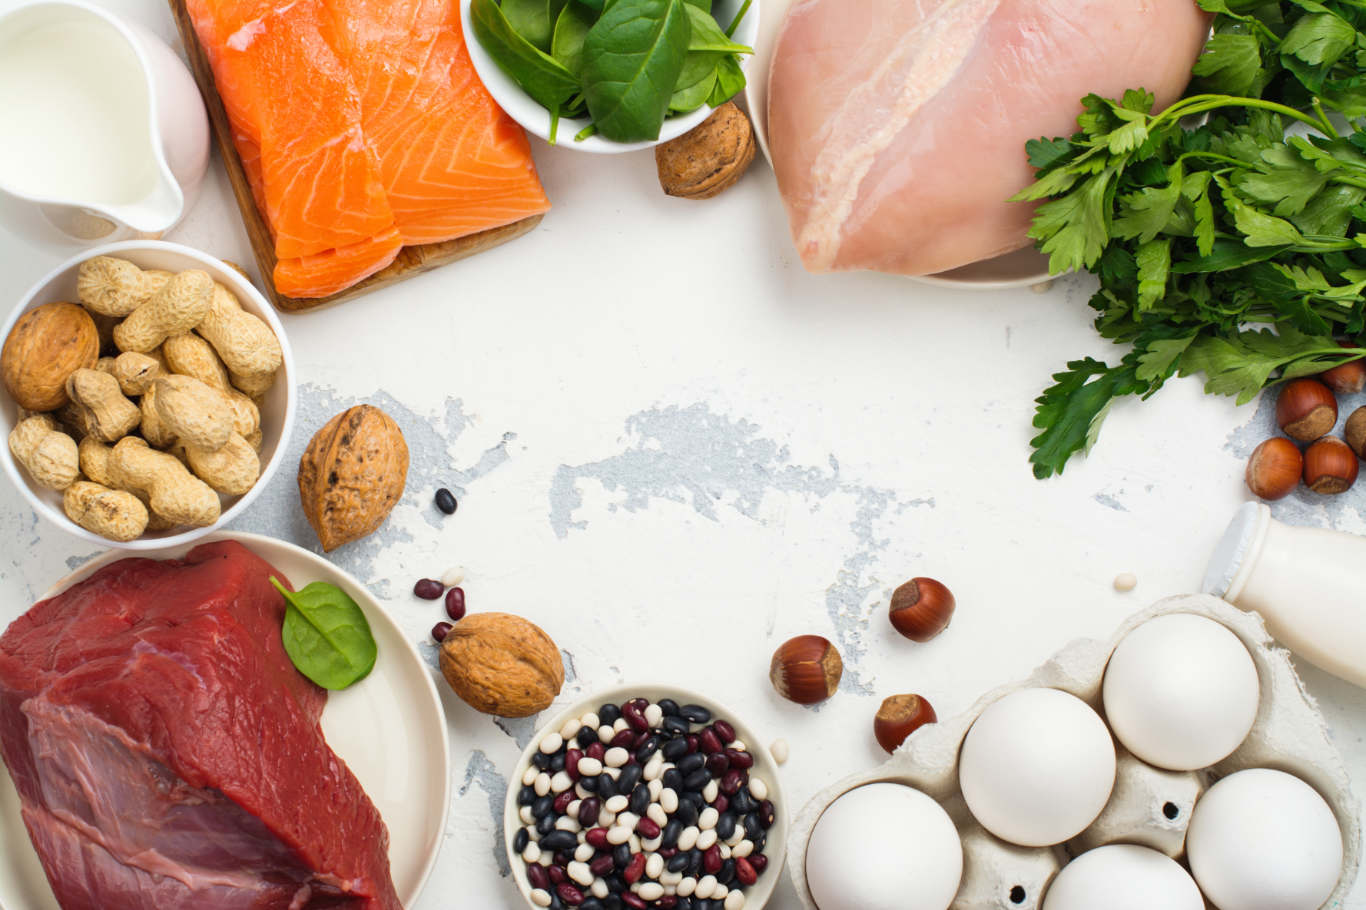 High Protein And Fat Intake Improves Regulation Of Blood Sugar Level